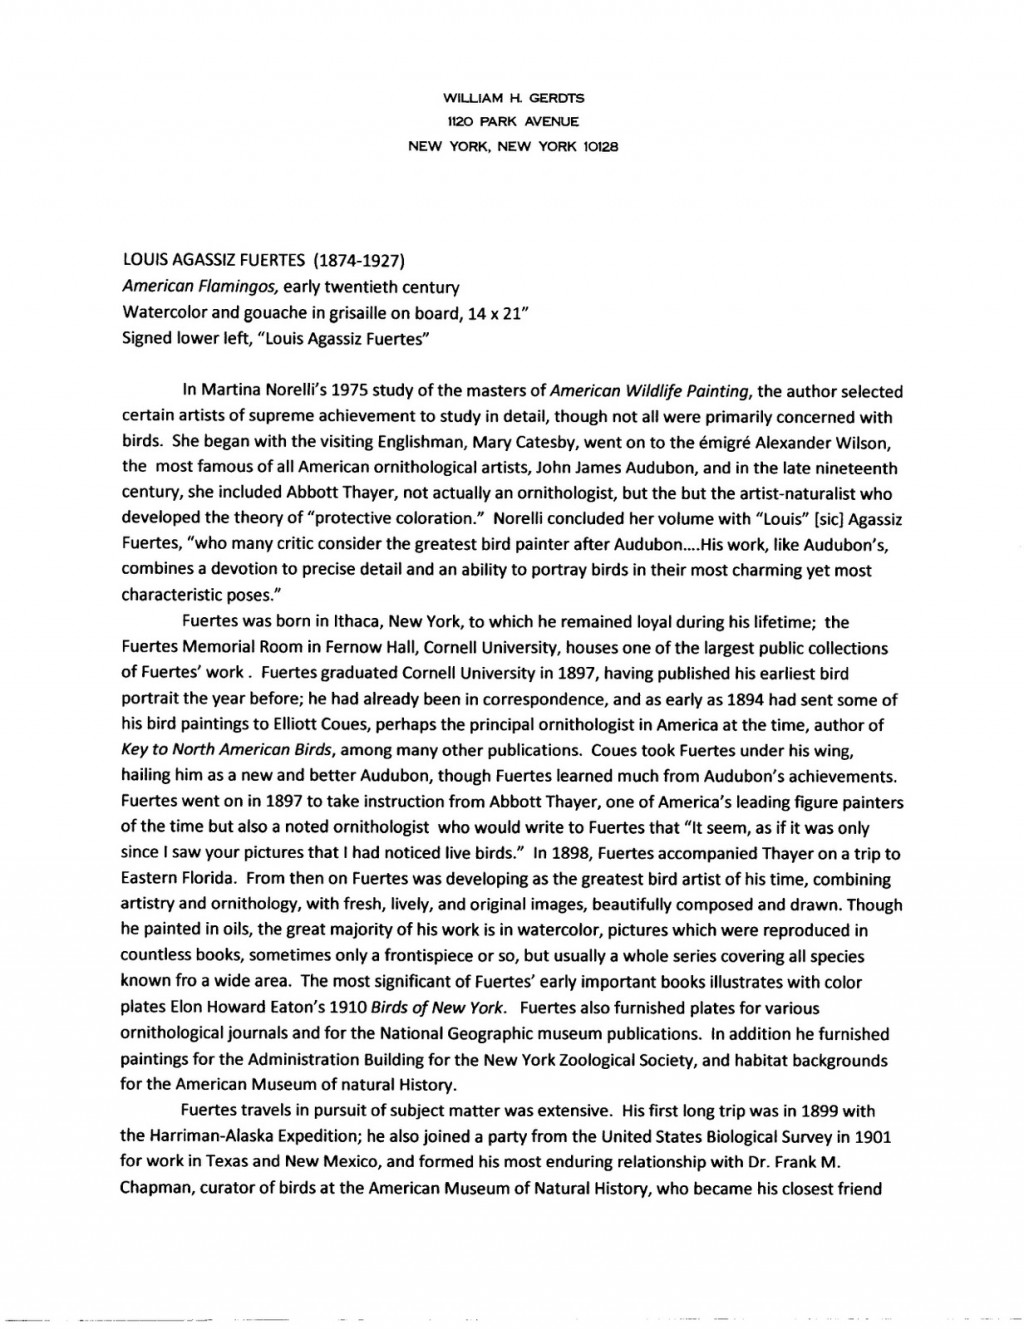 001 Essay Example Top Personal Writing For Hire University Formidable Format Narrative Scholarships Samples Graduate School Large